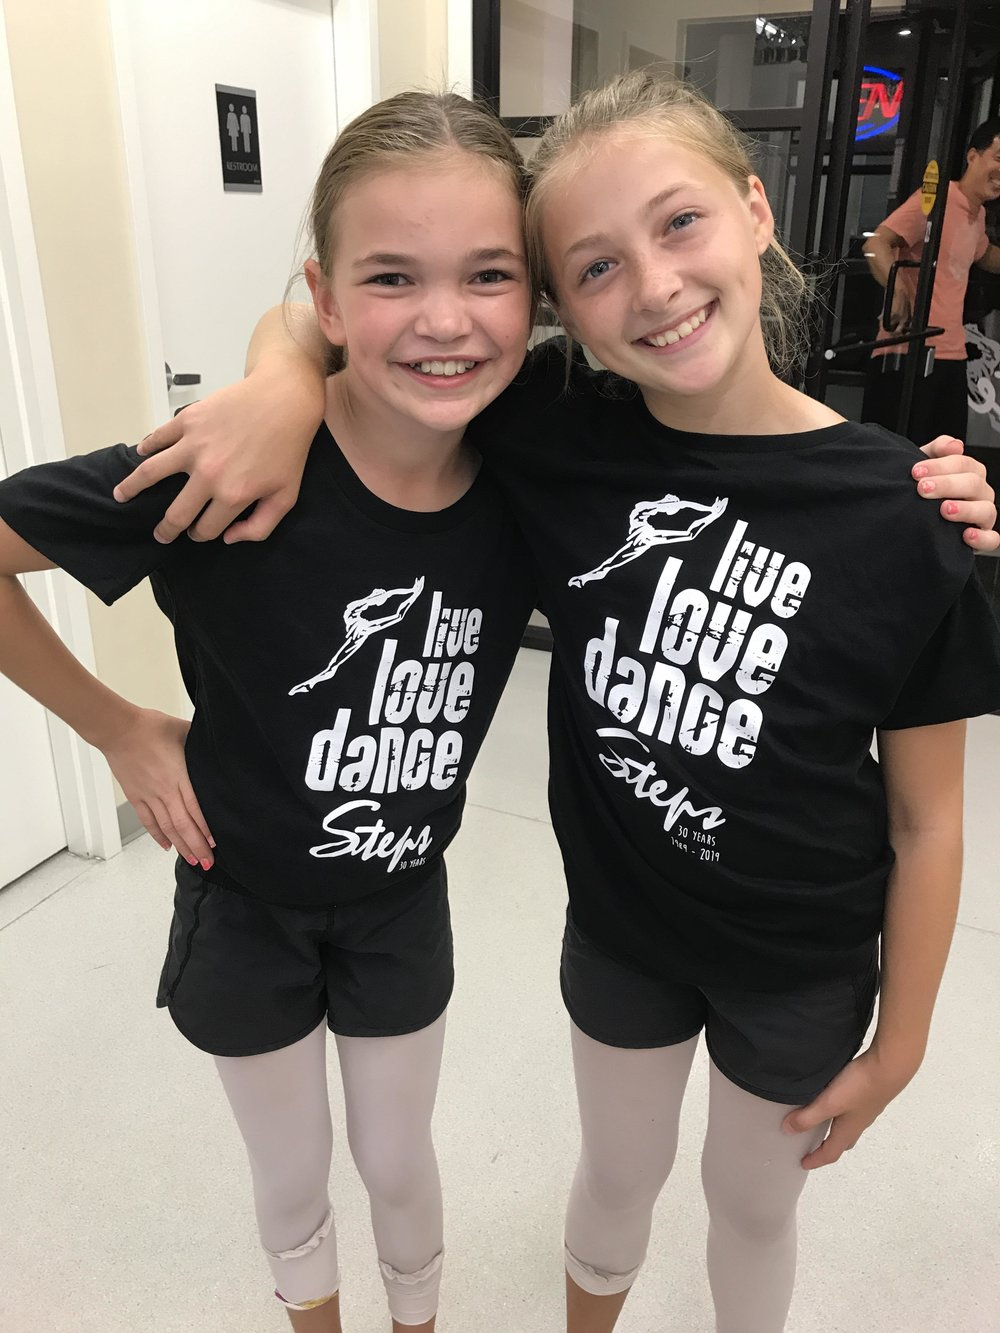 Ava & Megan Dance Steps 30th T-shirts.jpg